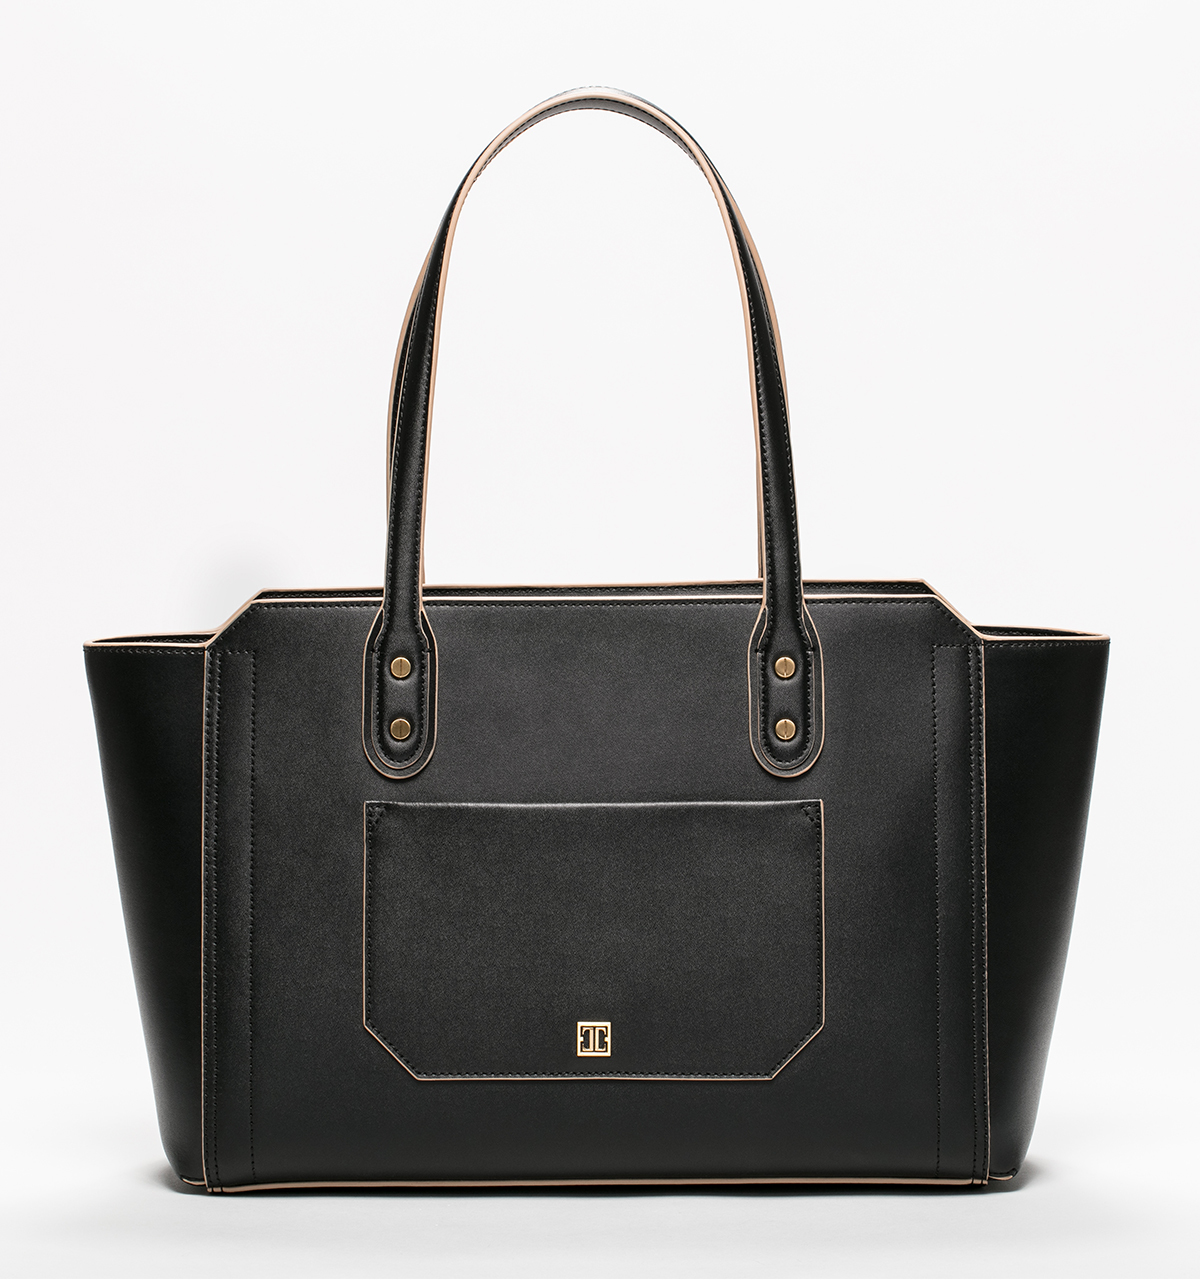 0001 ecomm soho shopper main black back